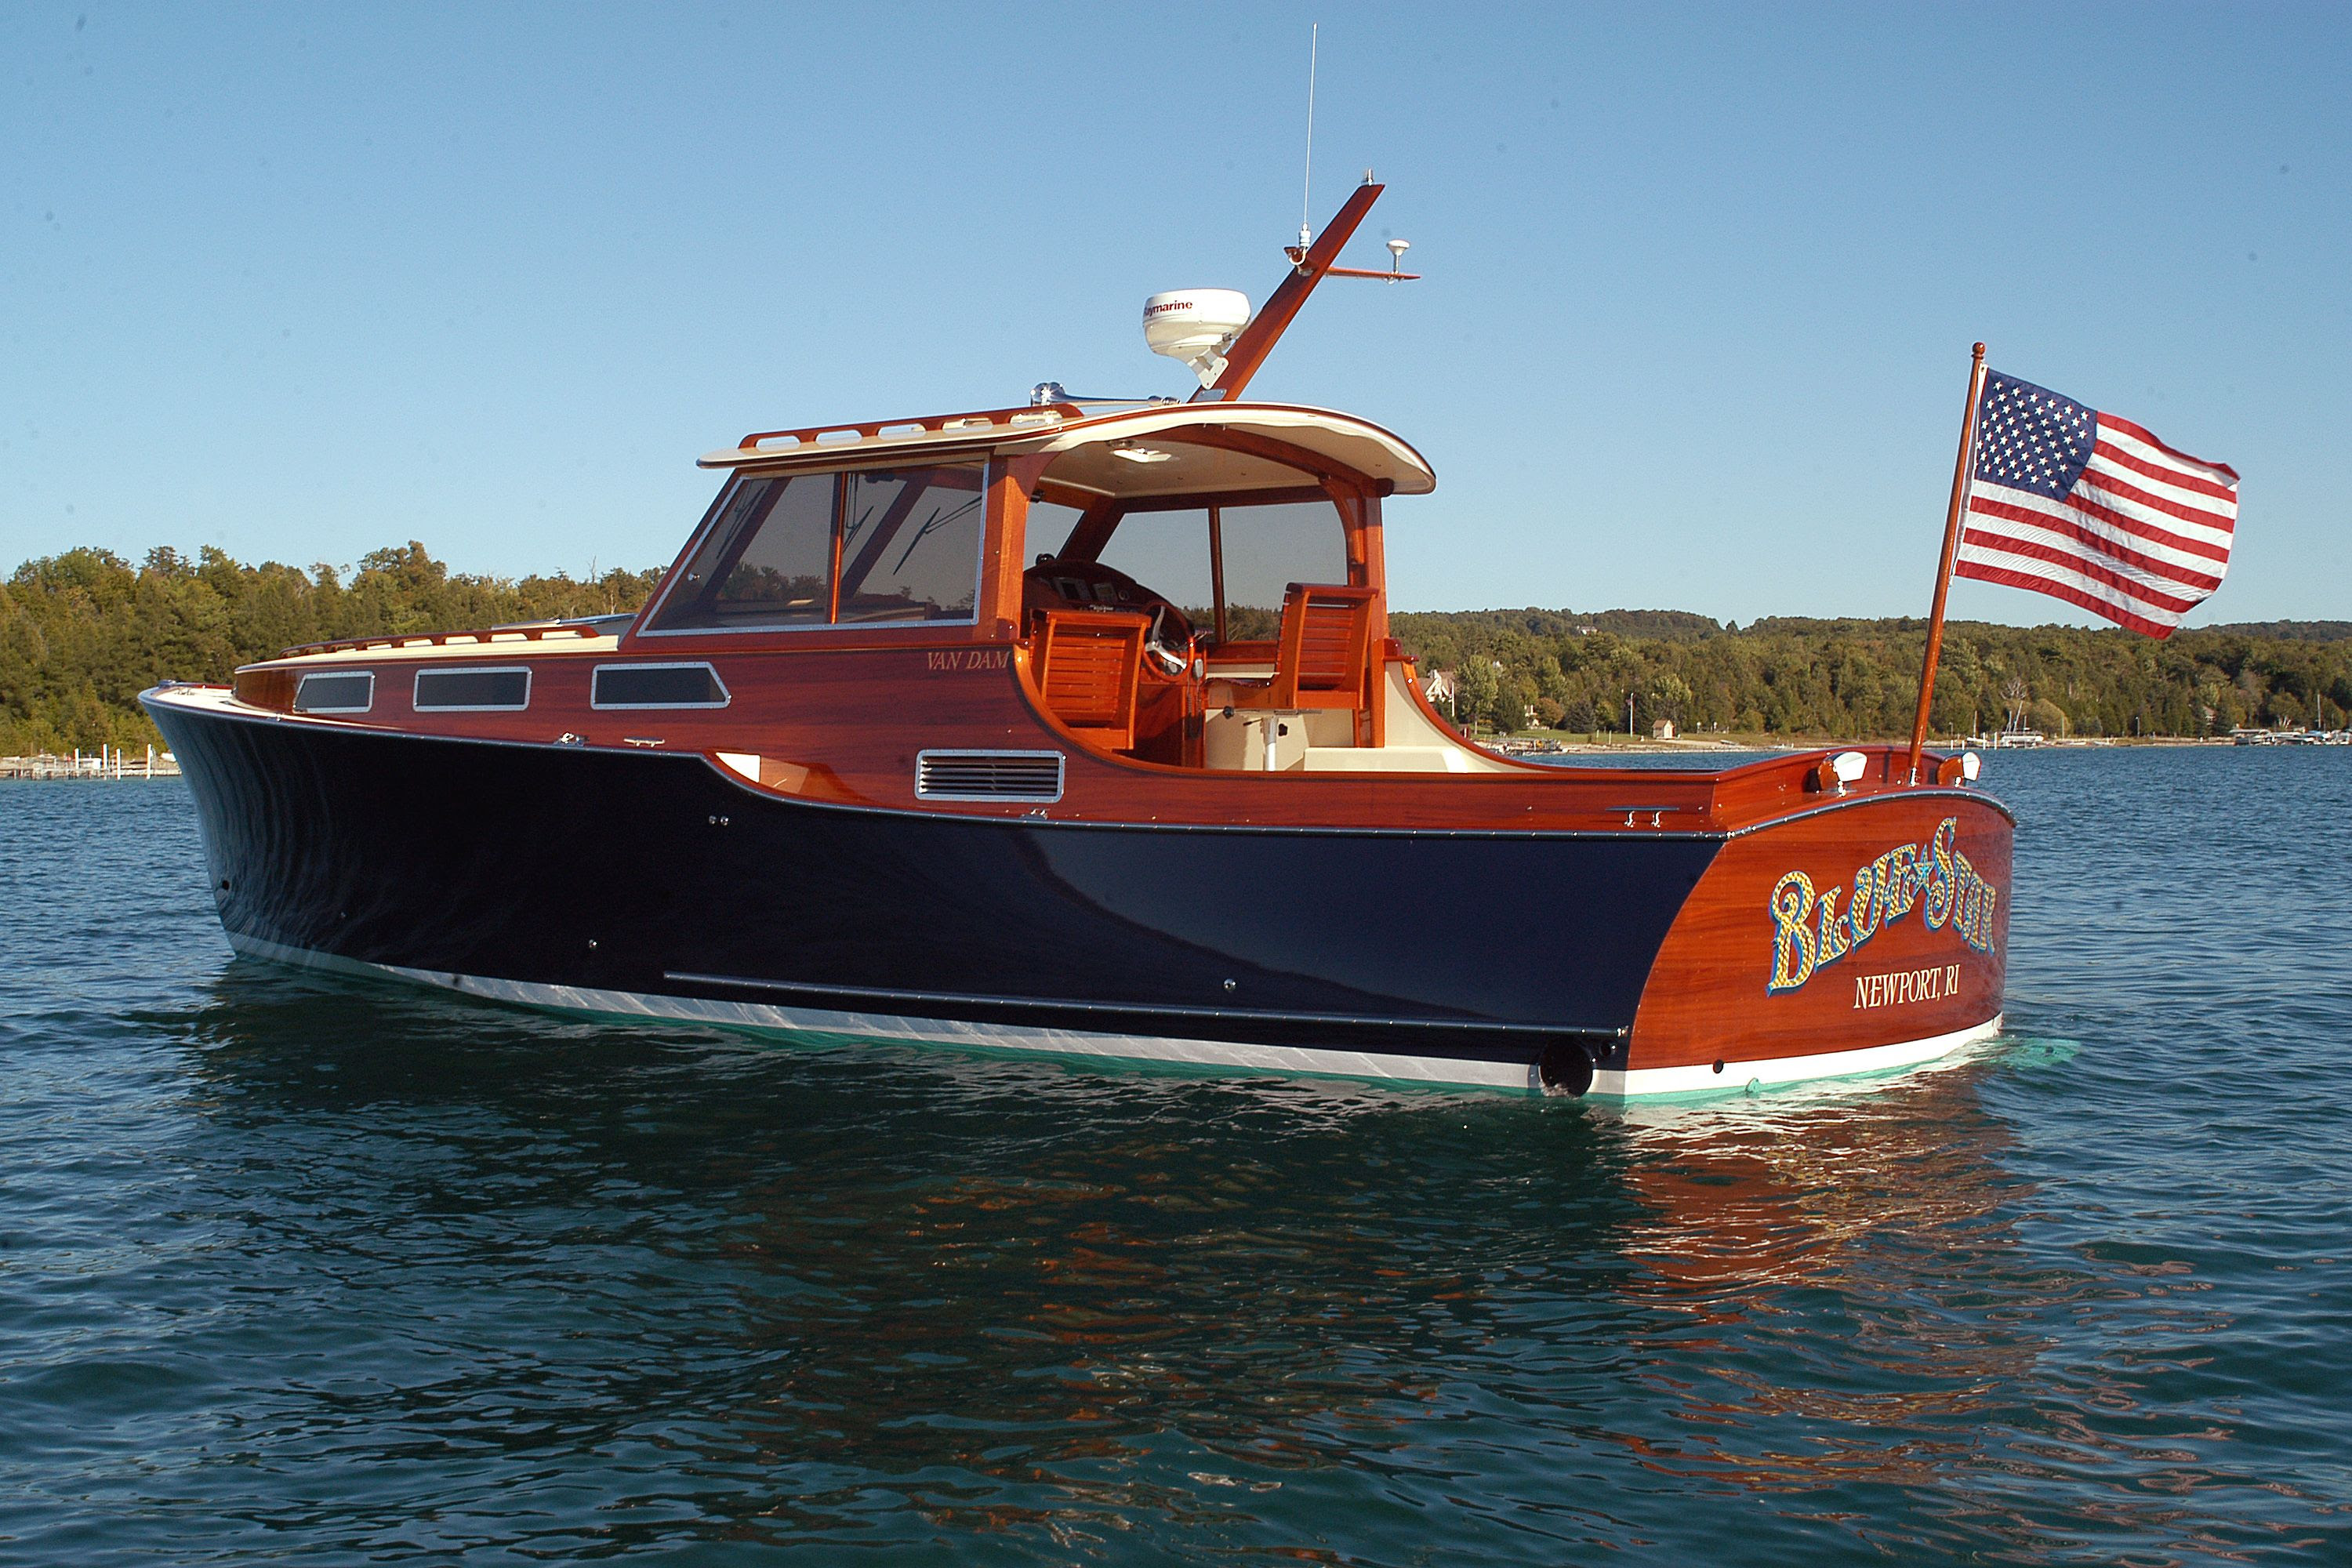 temptation cabins details xlarge sales yacht boat cruisers cabin for yachts sale